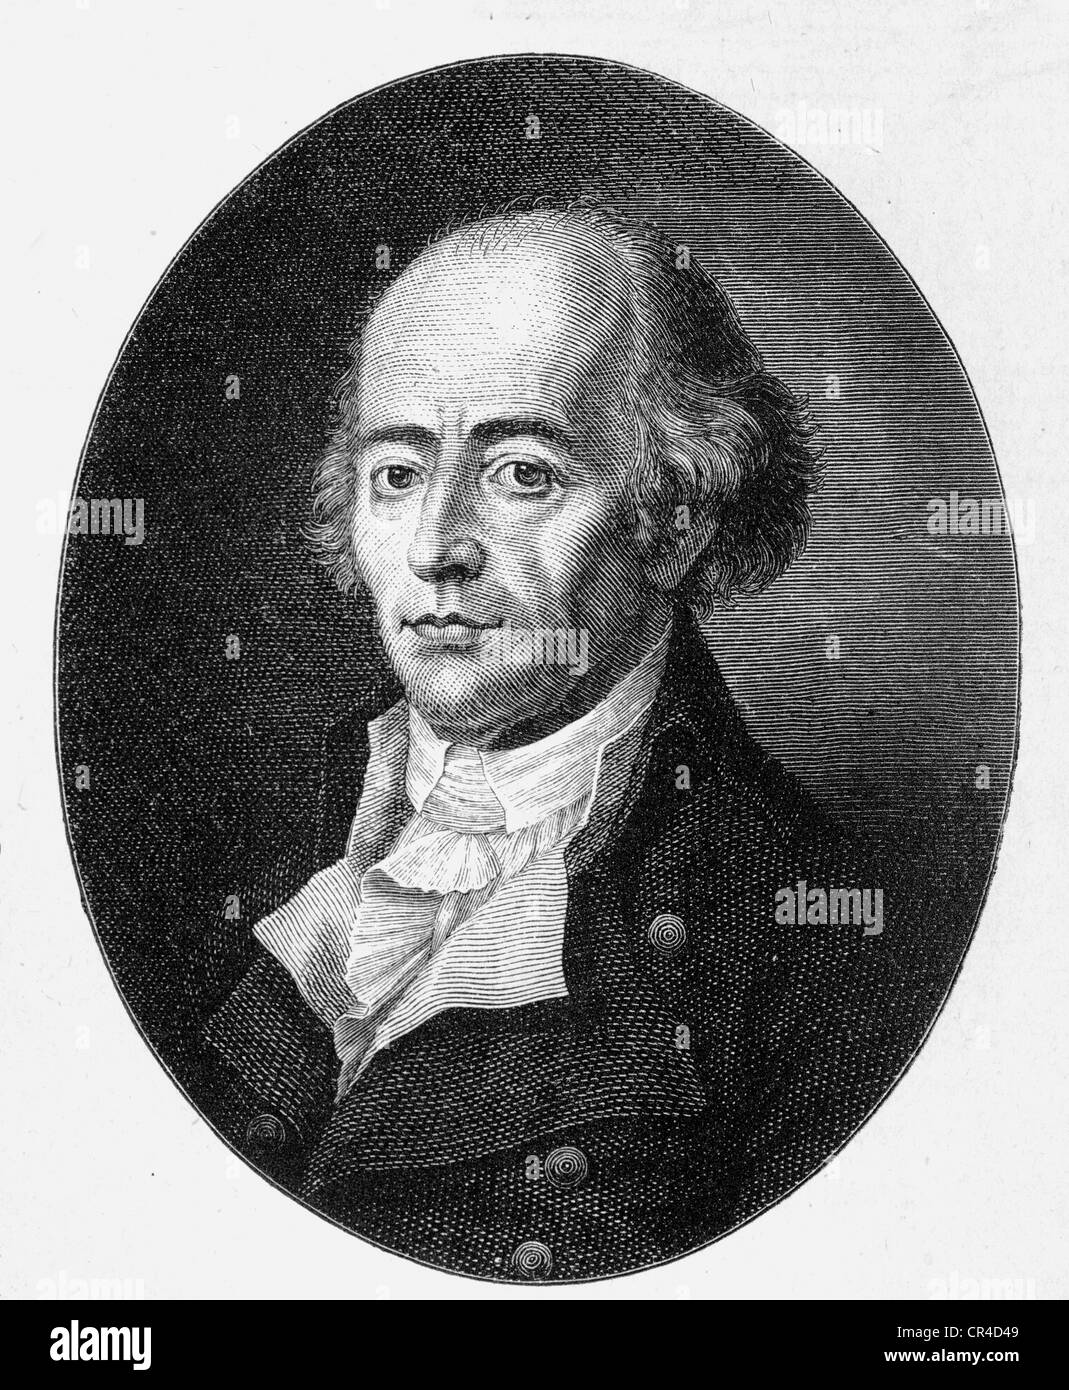 Johann Heinrich Jung, known as genannt Jung-Stilling, (1740 -1817), oculist and writer, steel engraving, before - Stock Image